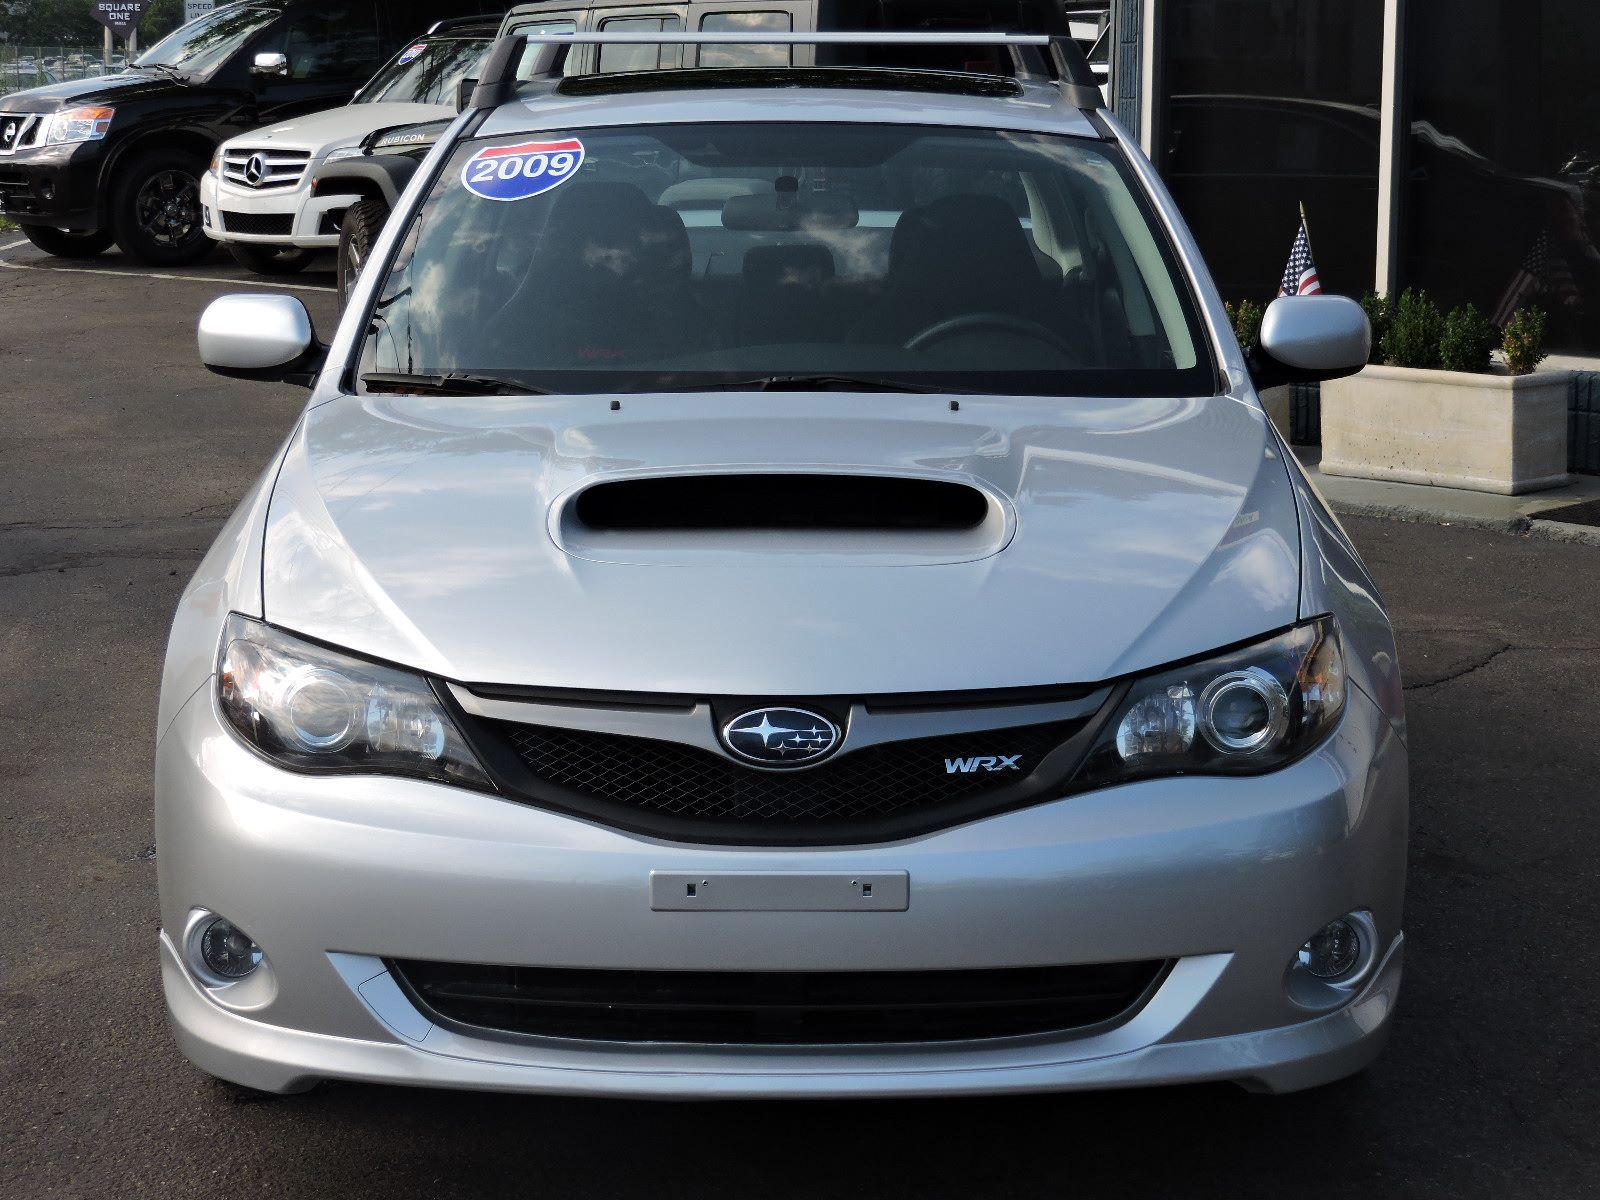 used 2009 subaru impreza sedan wrx wpremium pkg at auto house usa saugus. Black Bedroom Furniture Sets. Home Design Ideas